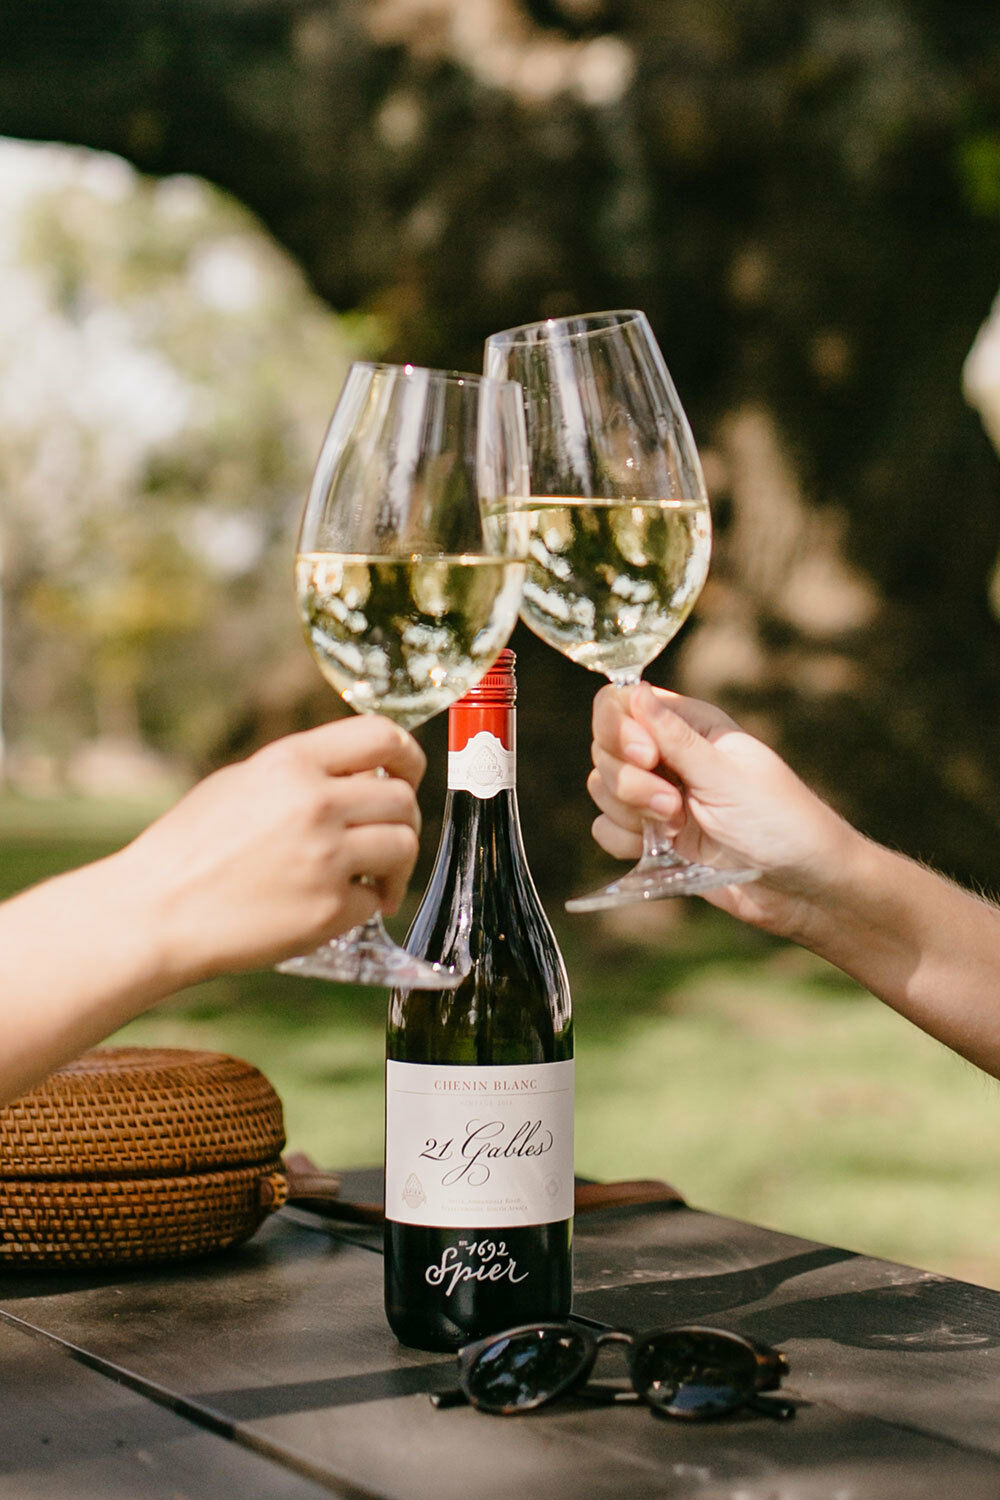 SPIER'S 21 GABLES CHENIN BLANC IS A SHOO-IN ACCORDING TO PLATTER'S 2020 SOUTH AFRICAN WINE GUIDE